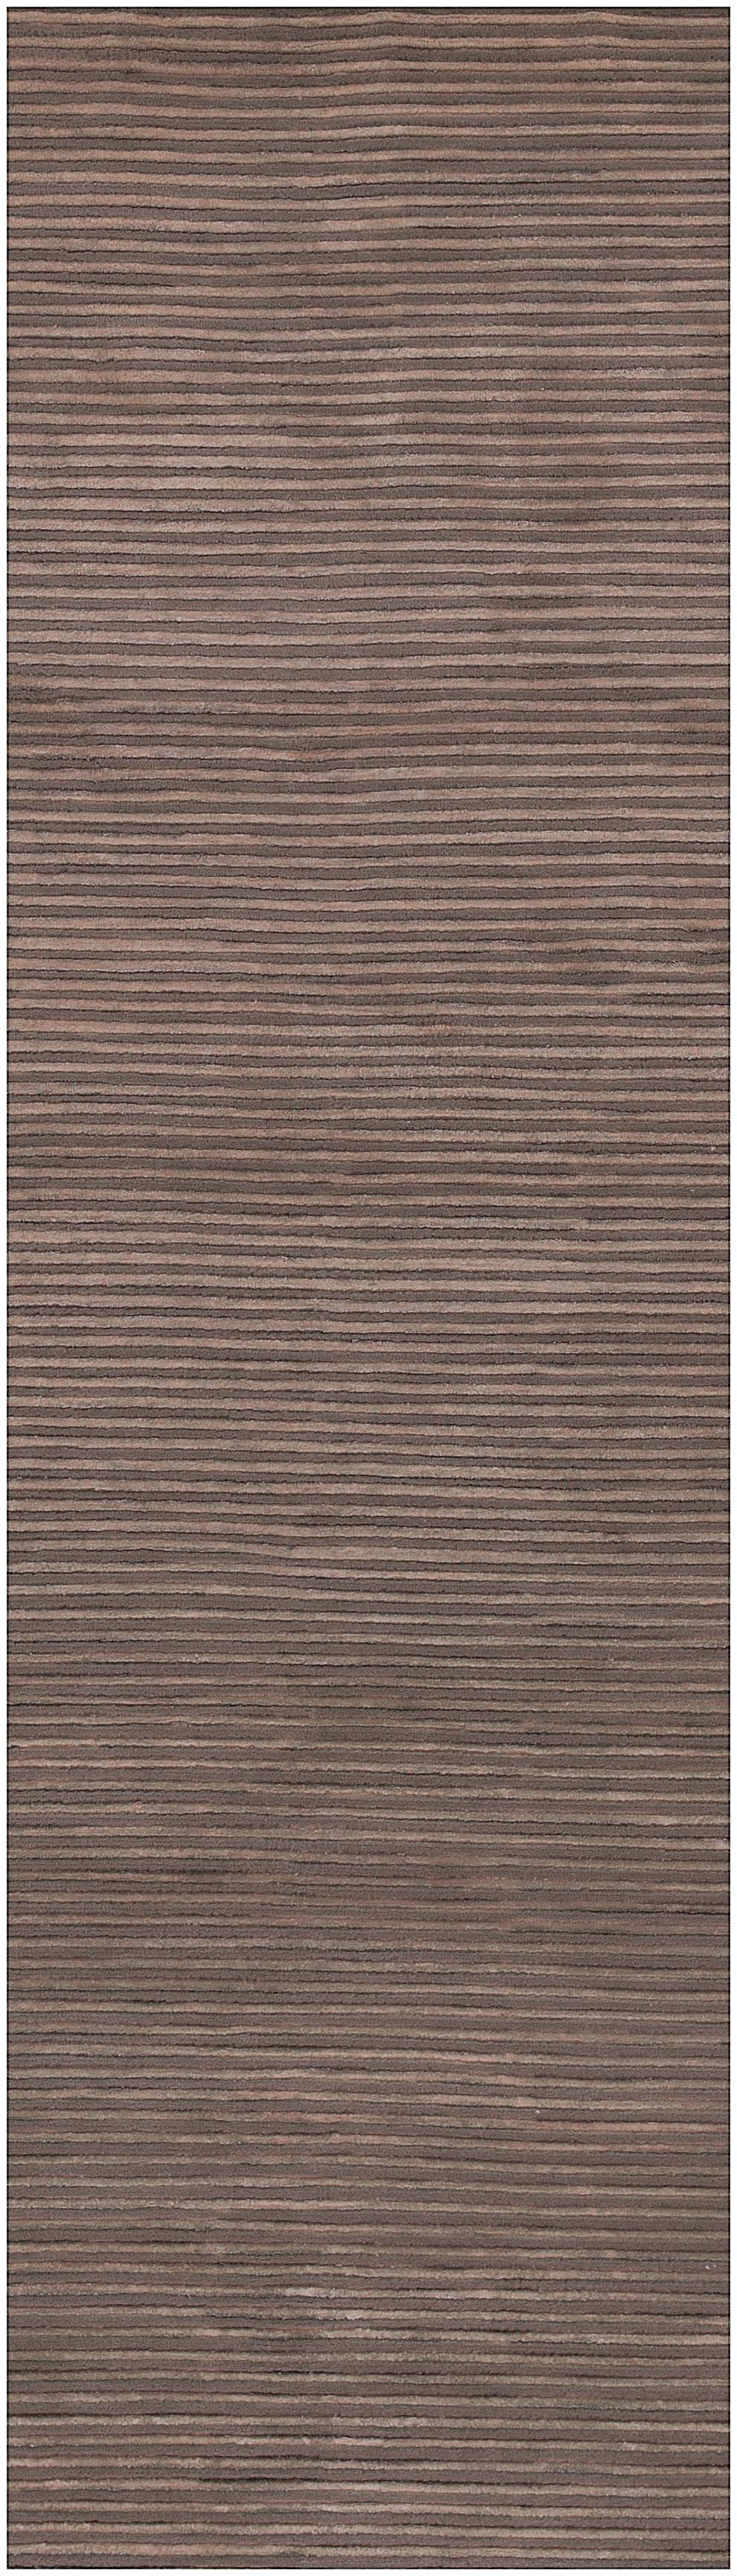 Surya Mugal In8243 Brown Area Rug Free Shipping